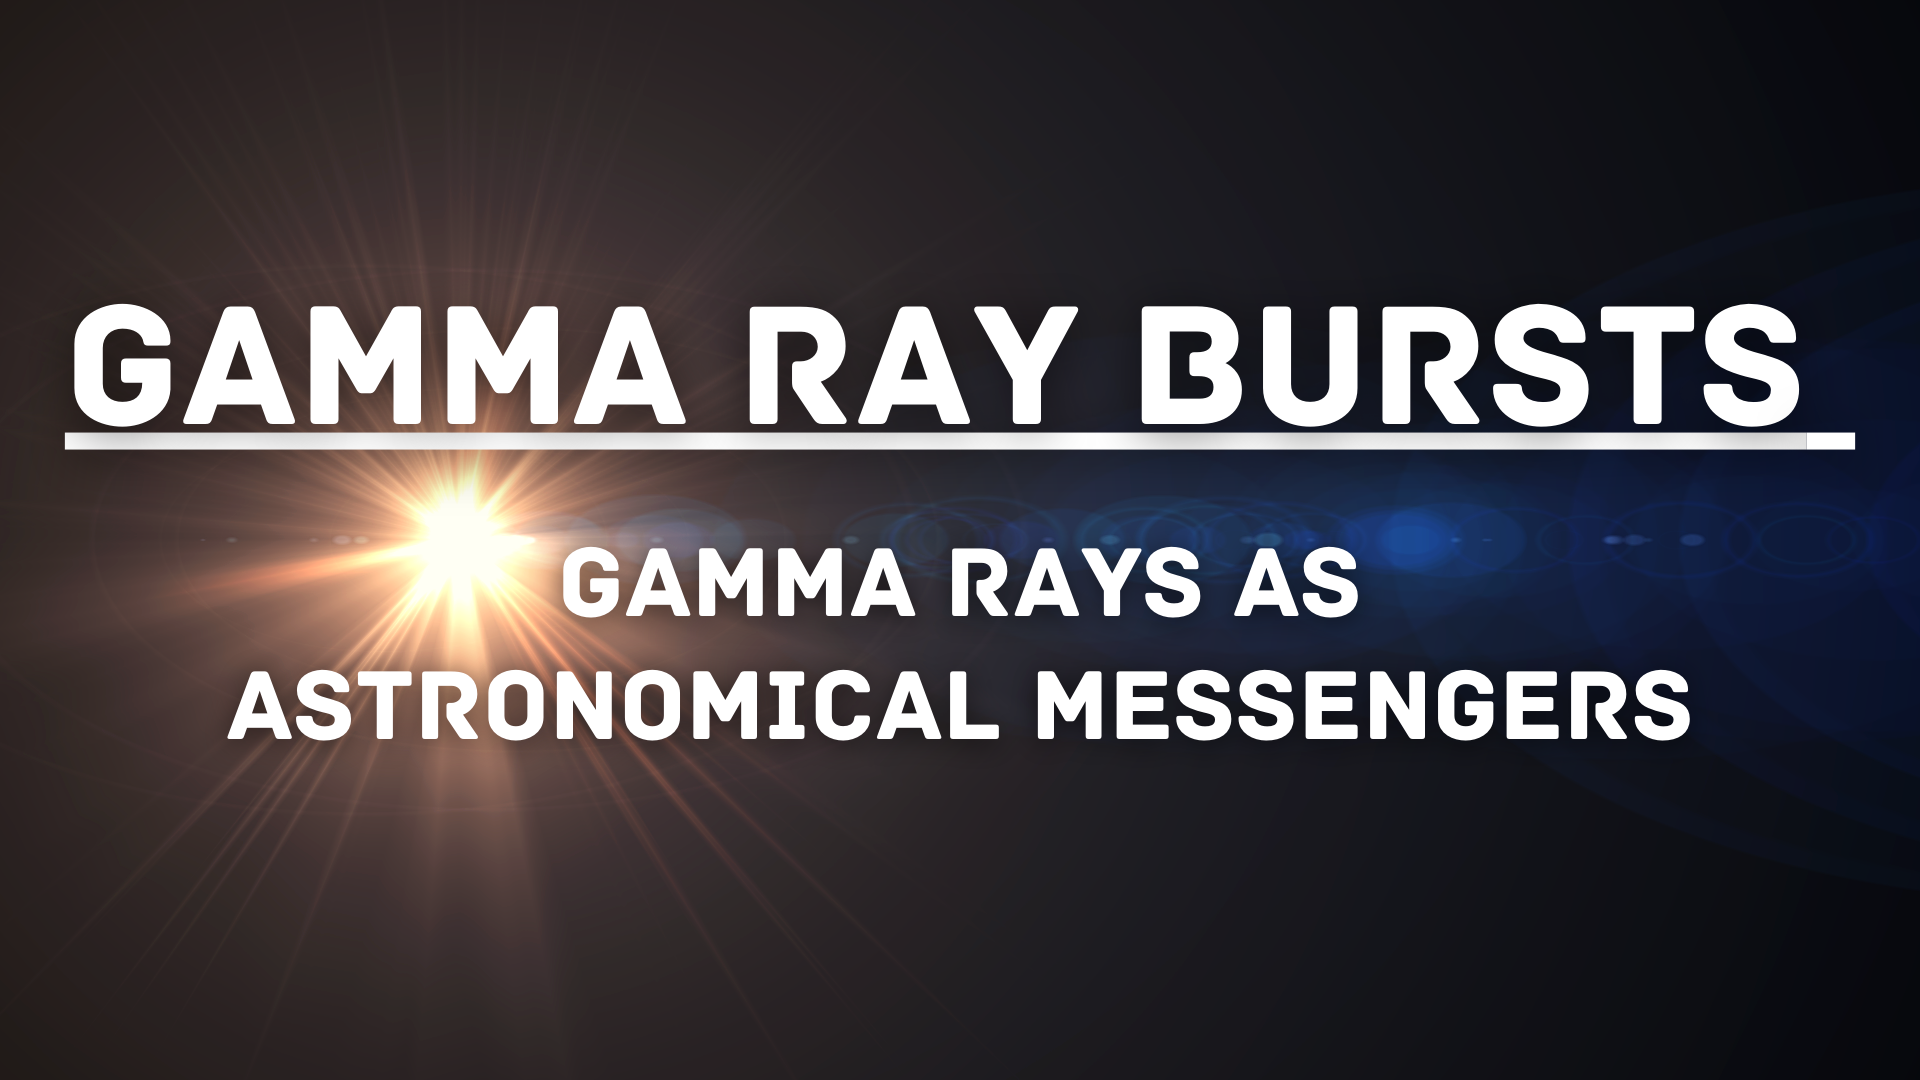 Gamma Rays as Astronomical Messengers: Solstice summer Project